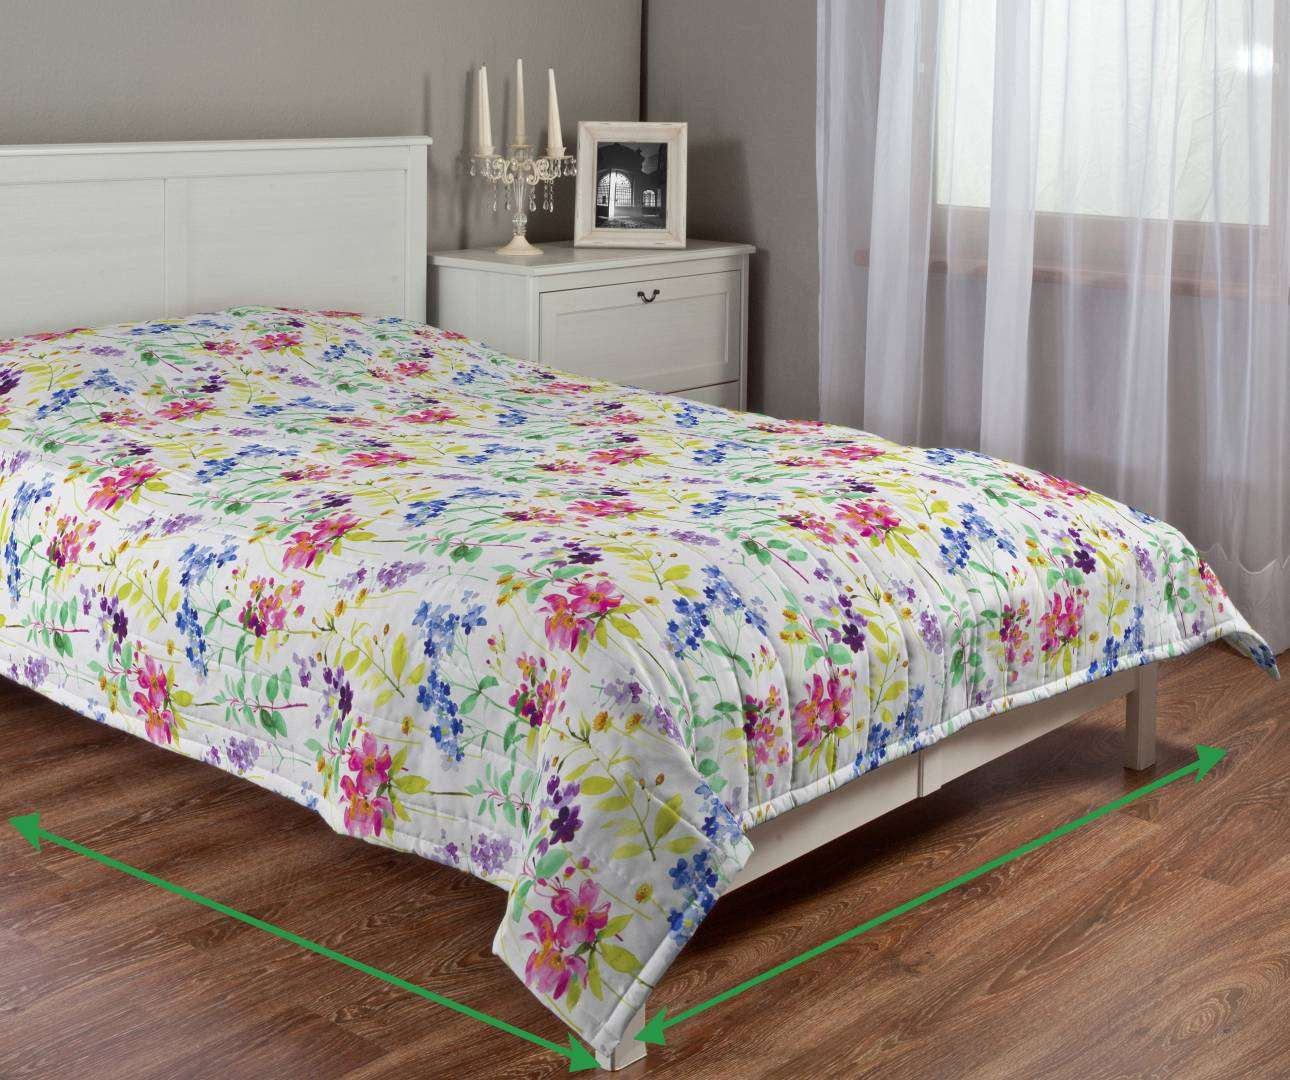 Quilted throw (vertical quilt pattern) in collection Monet, fabric: 140-06